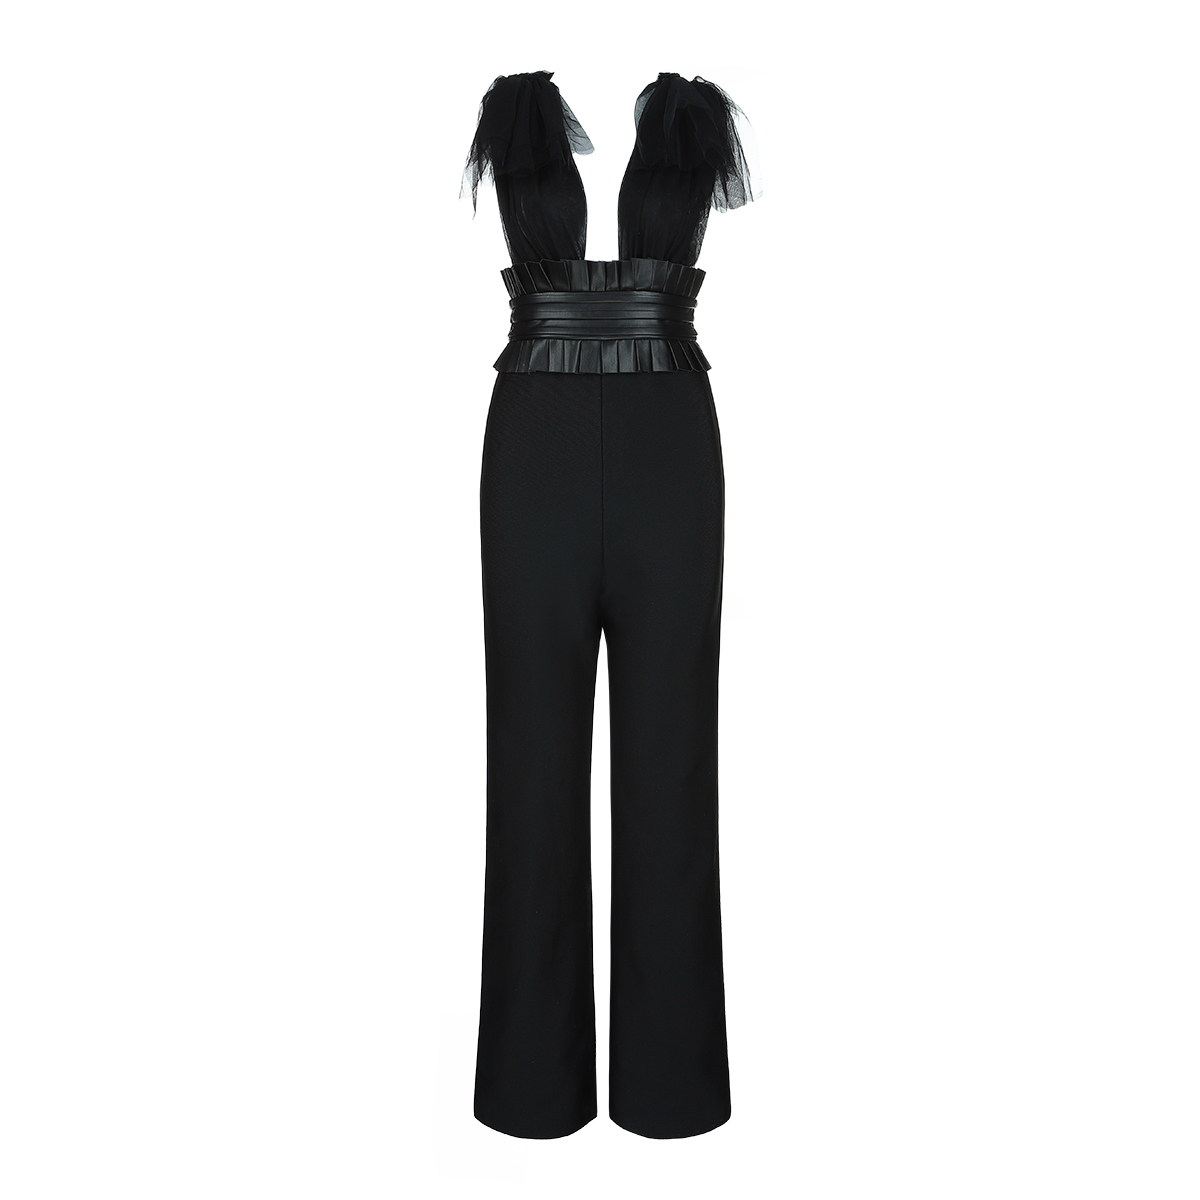 Deavogy 2019 New backless Women Sexy Bodycon mesh V neck Evening Party Bandage Jumpsuits Hot Sale-in Jumpsuits from Women's Clothing    2